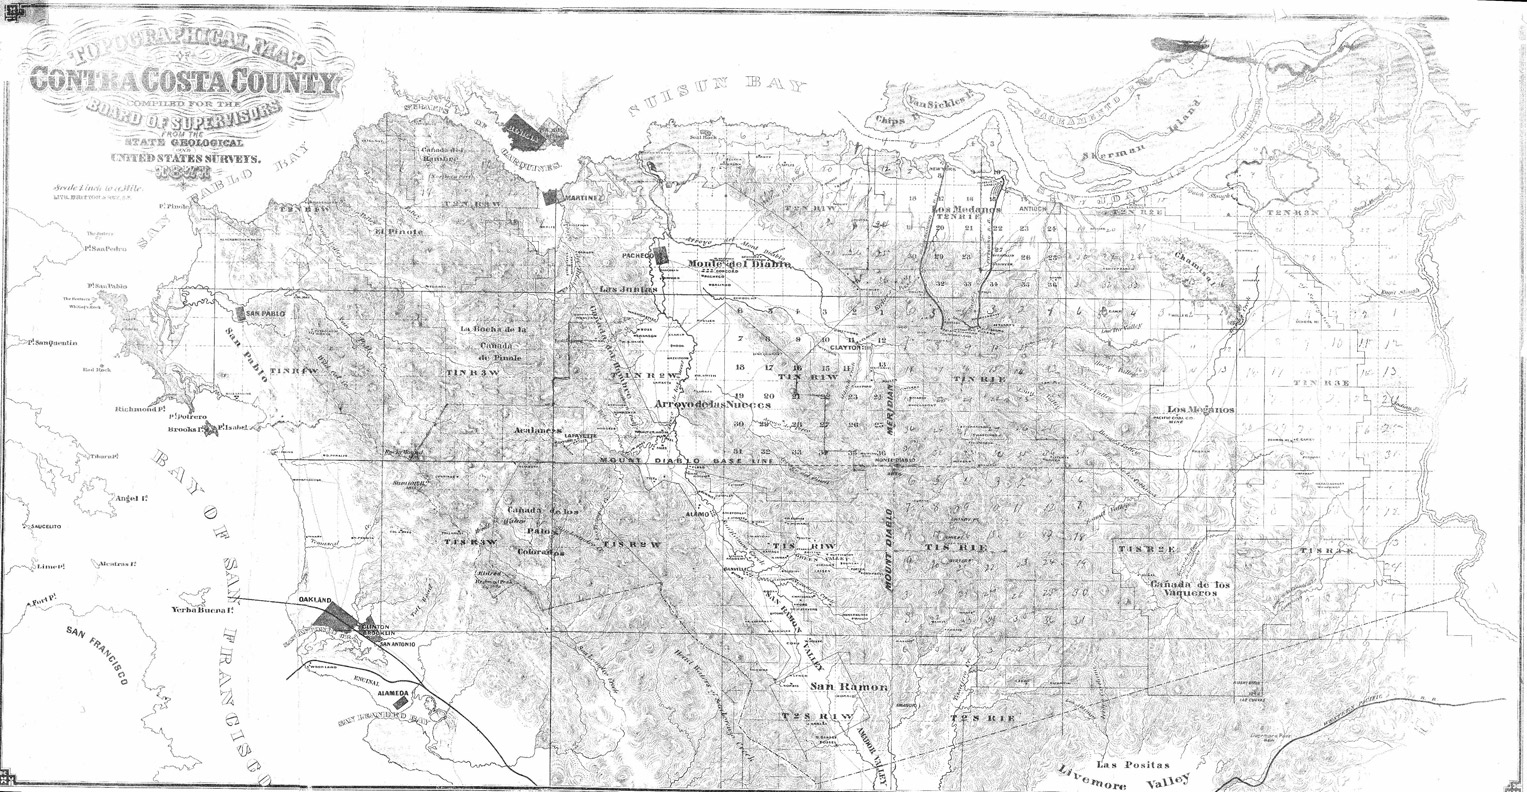 El Cerrito Historical Society History Of California 2nd Judicial Circuit Maps This Map Shows Contra Costa County With Mdb M Lines Under Mapping Surveying The Is Divided Into 6 Mile Square Quadrants Centered